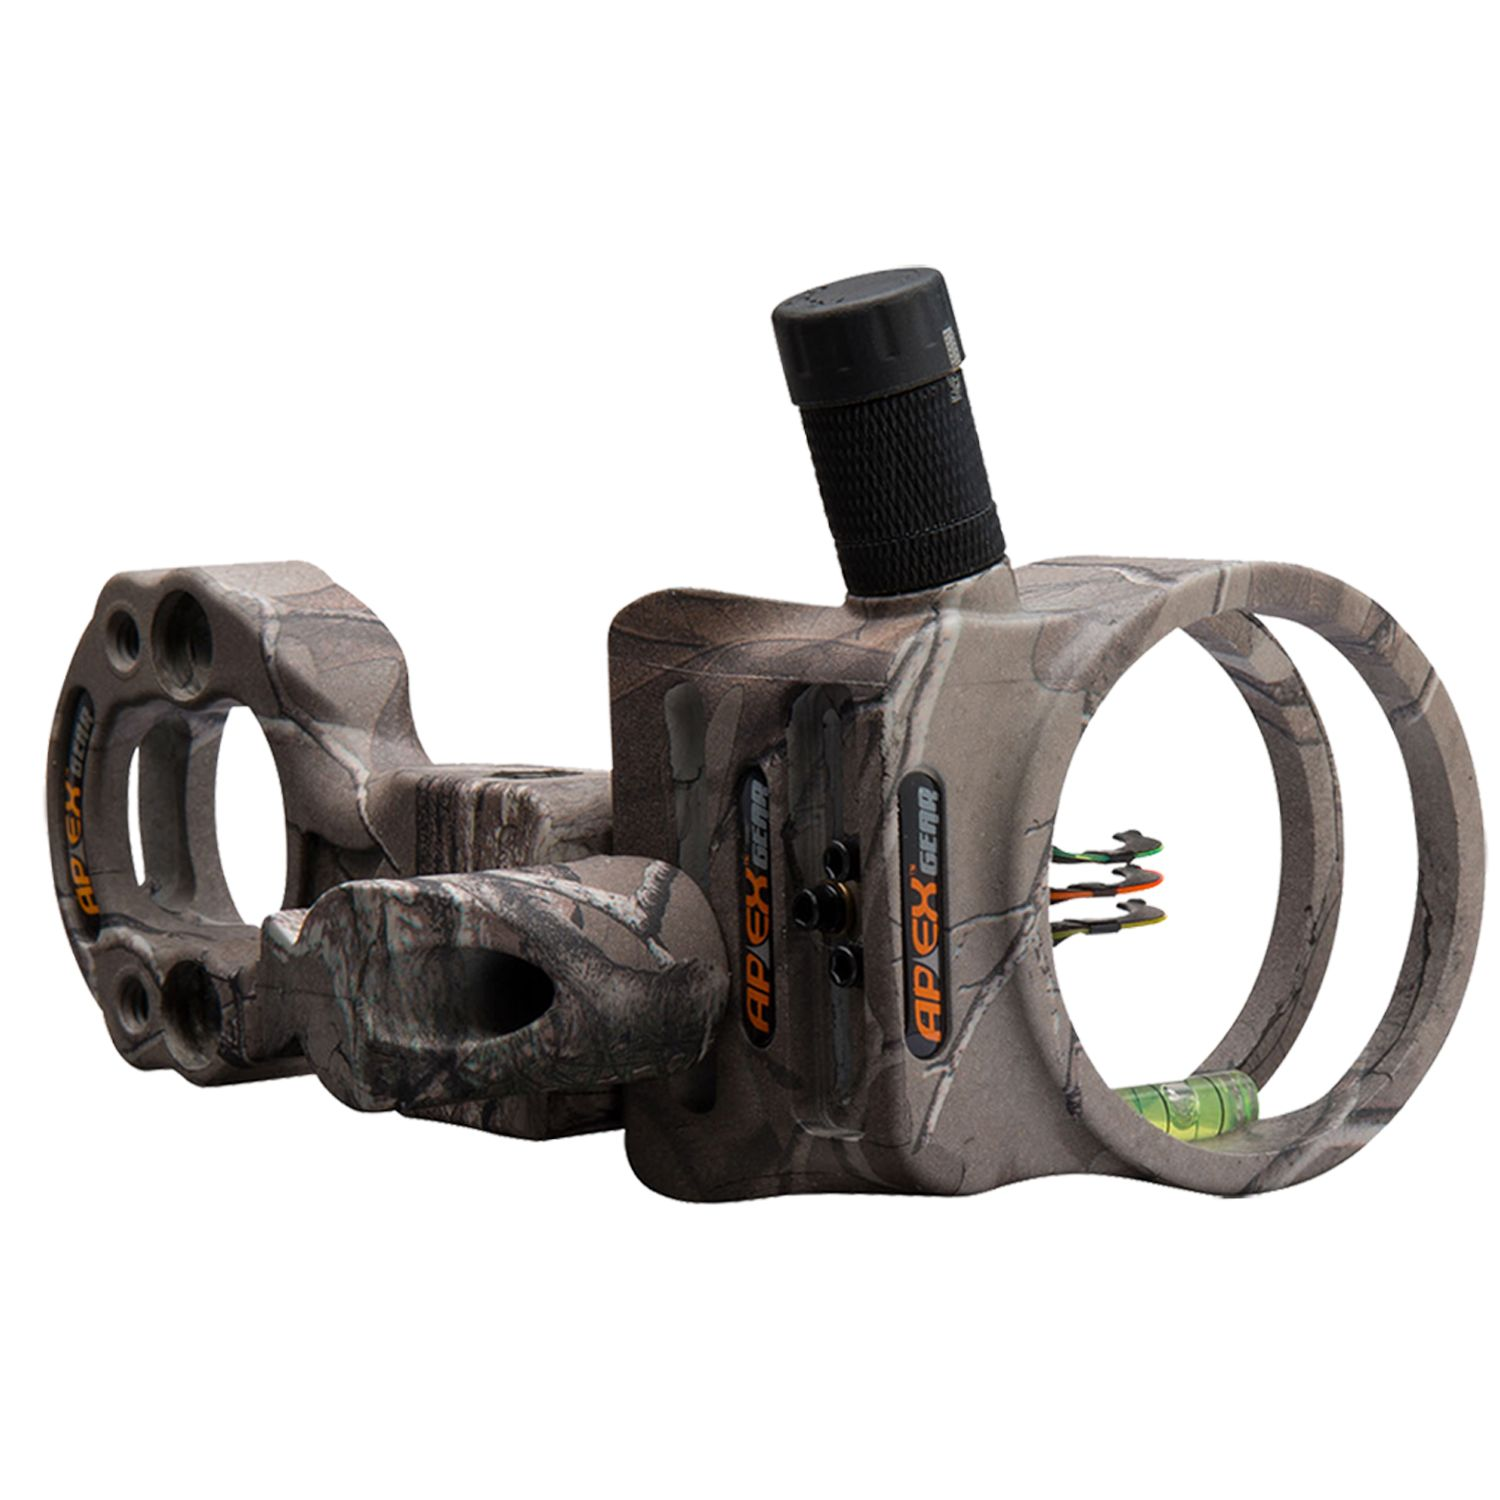 Apex Gear Tundra 3 Pin Bow Sight, Ambidextrous, Right/left Hand, Brown